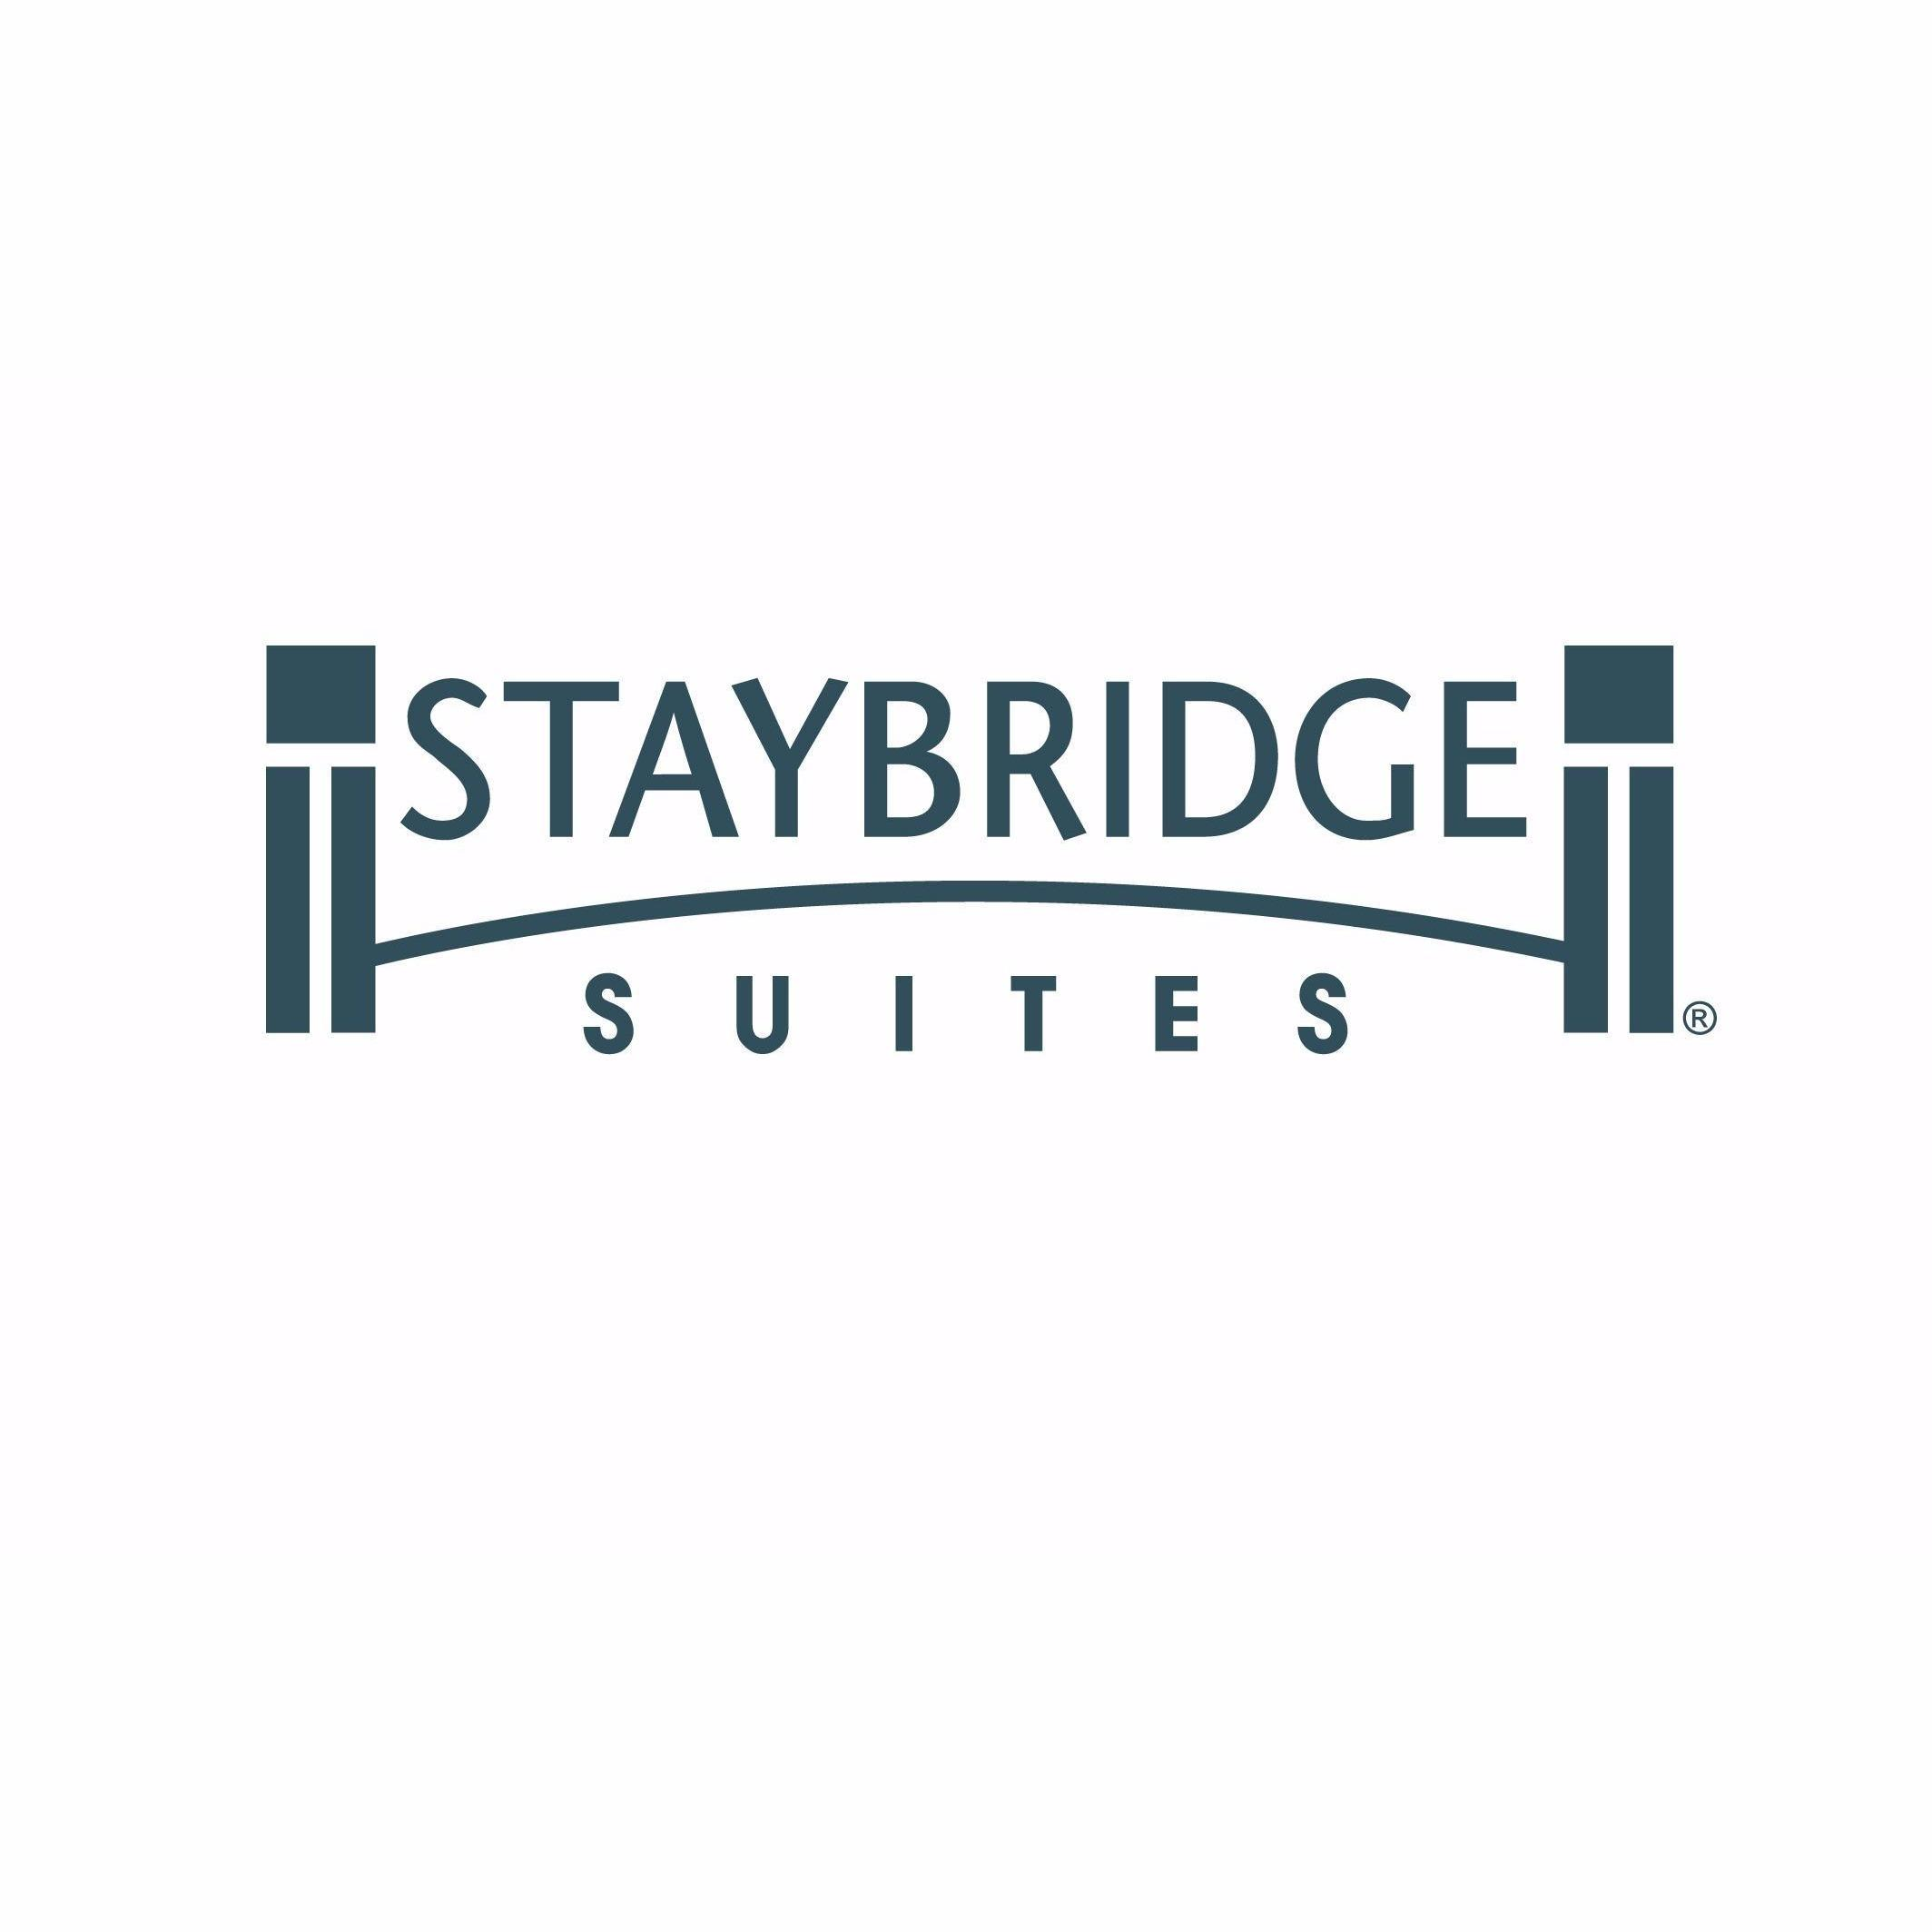 staybridge suites.jpg